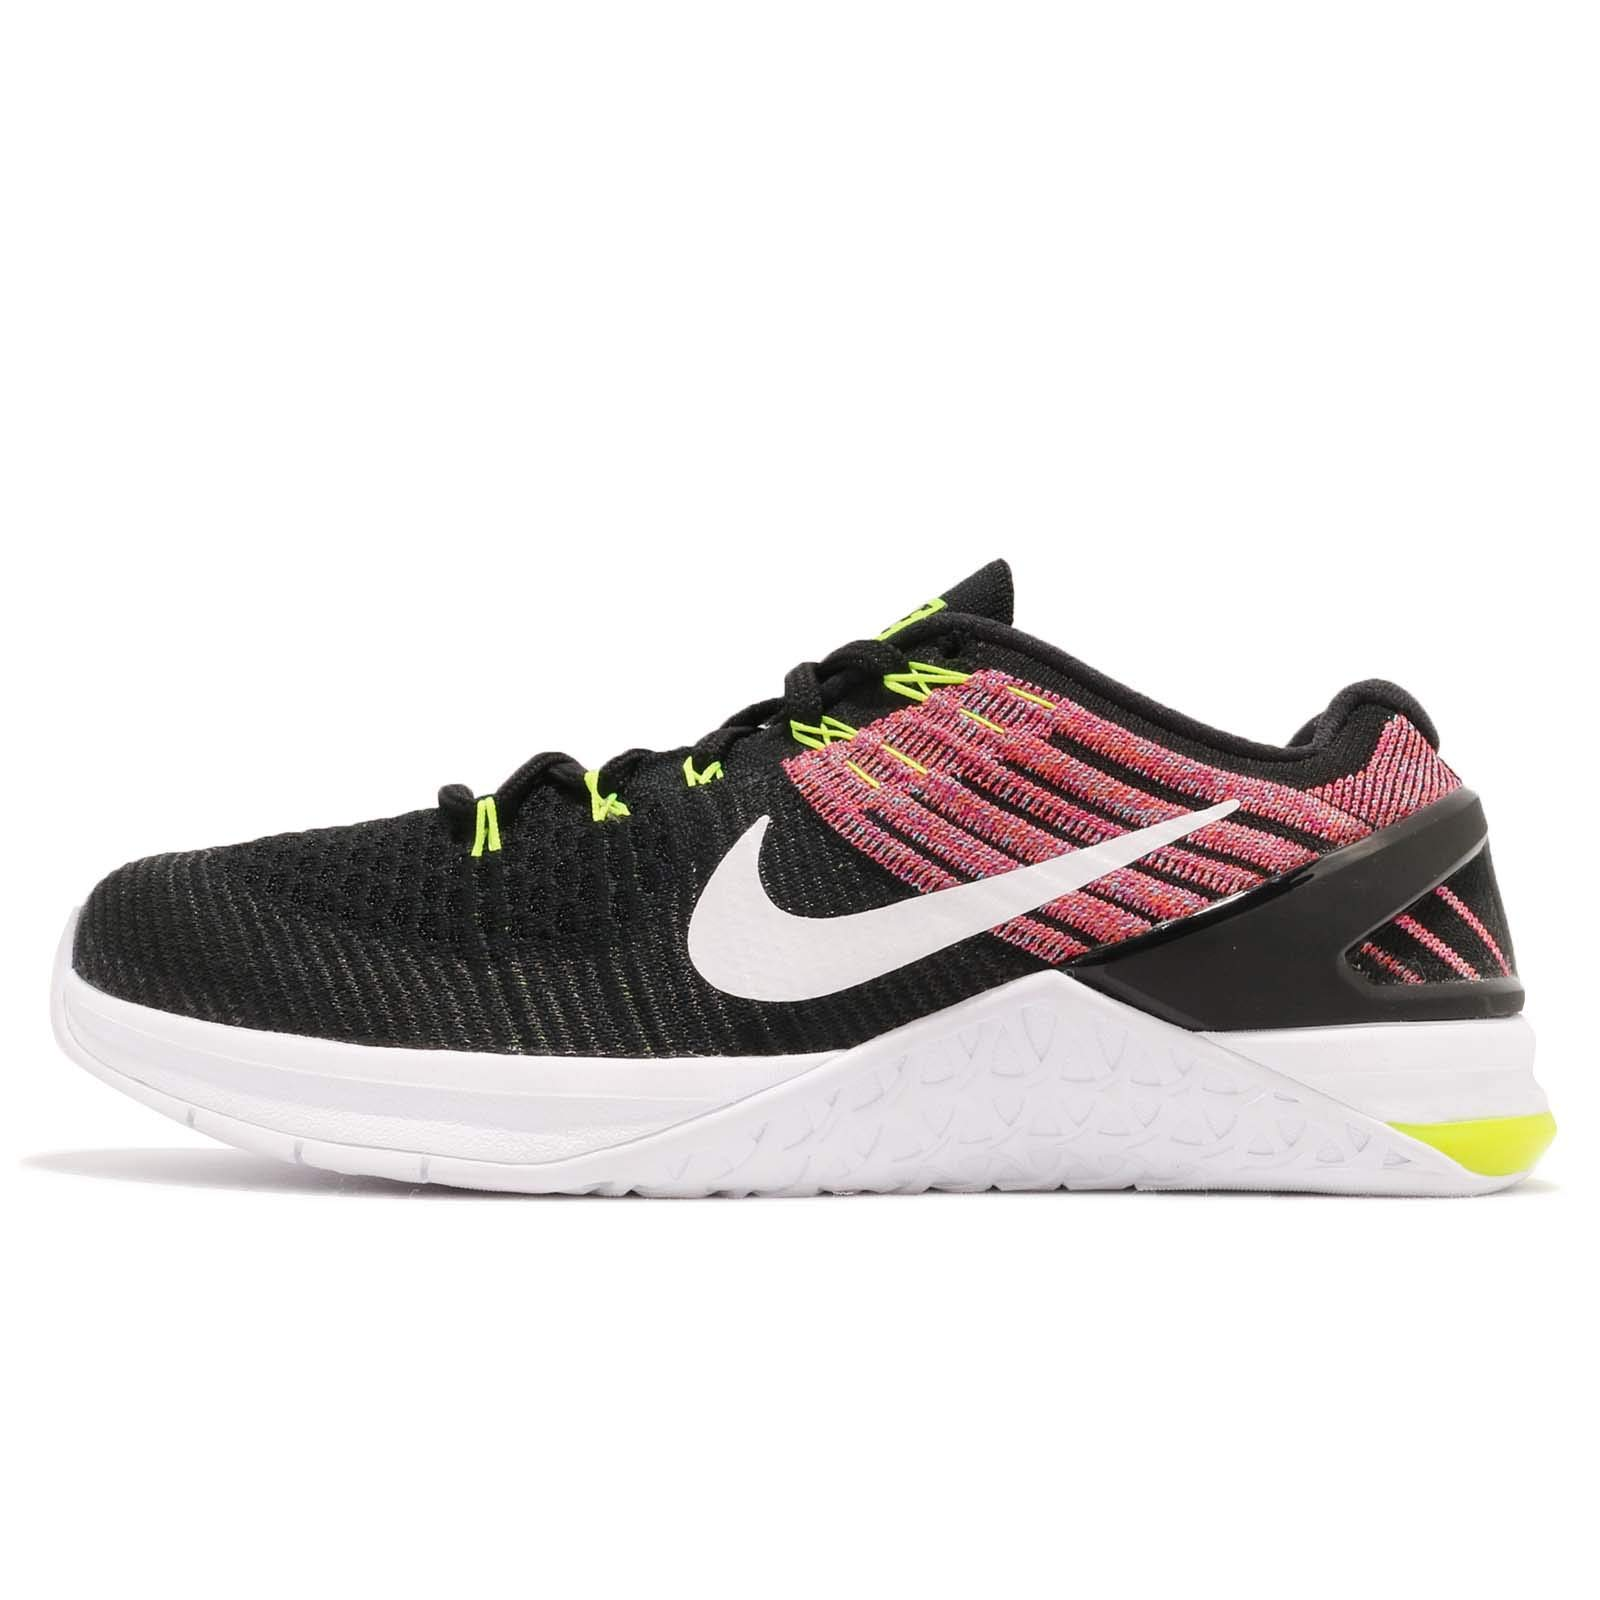 effd382732527 Galleon - Nike Metcon DSX Flyknit Size 8 Womens Cross Training  Black White-Volt-Chlorine Blue Shoes